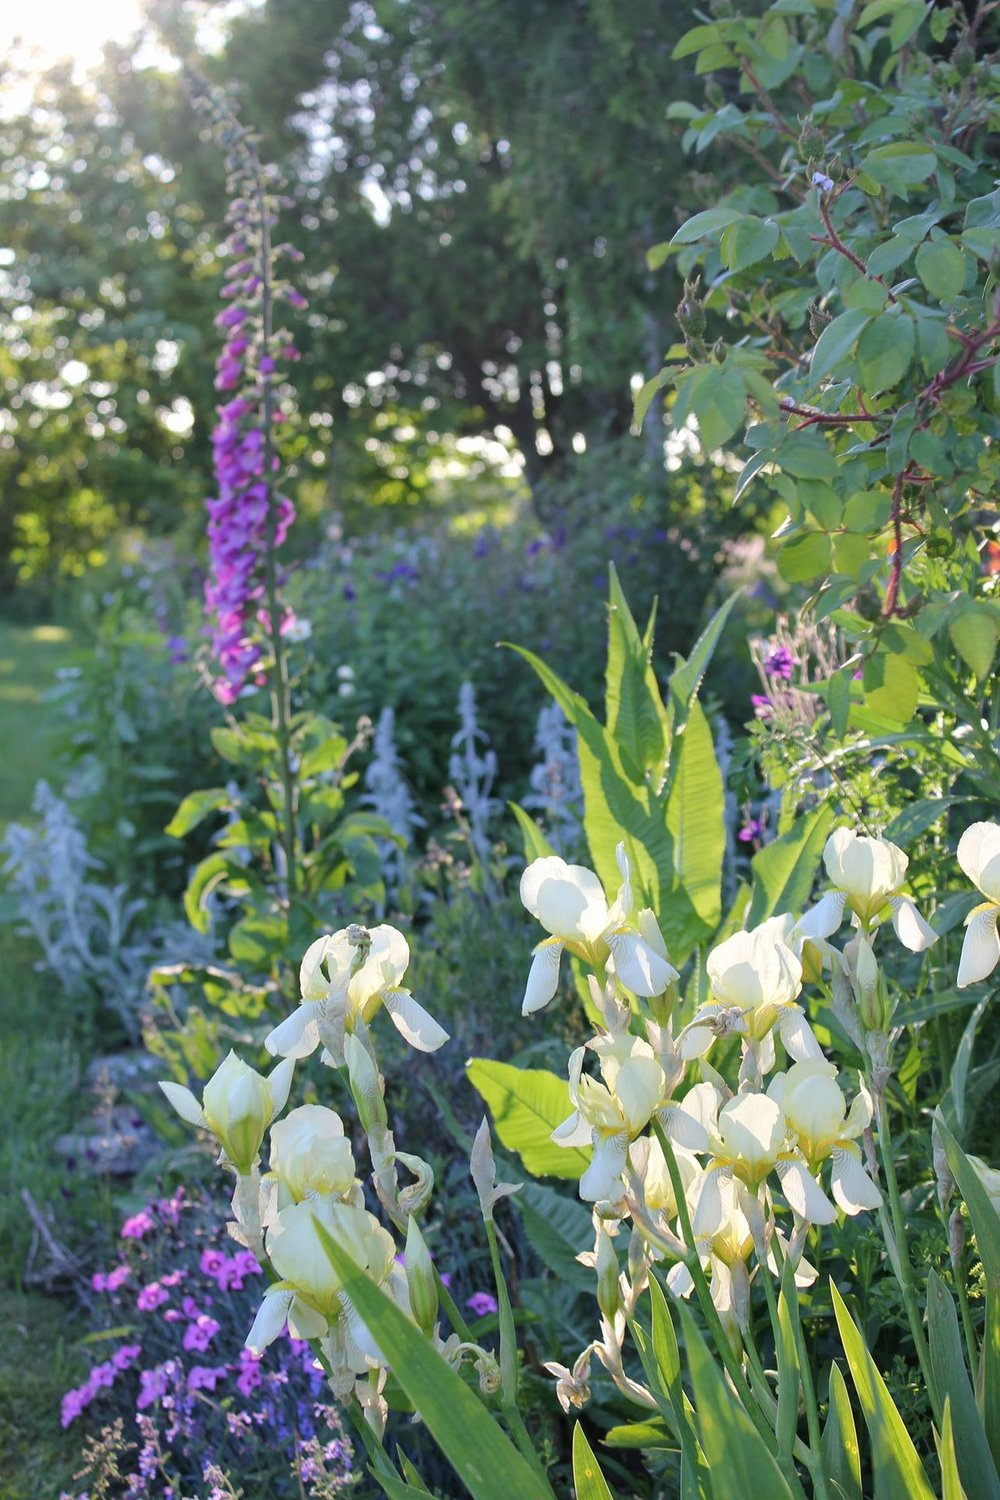 Hedgerow's garden in June. Nova Scotian cottage garden.